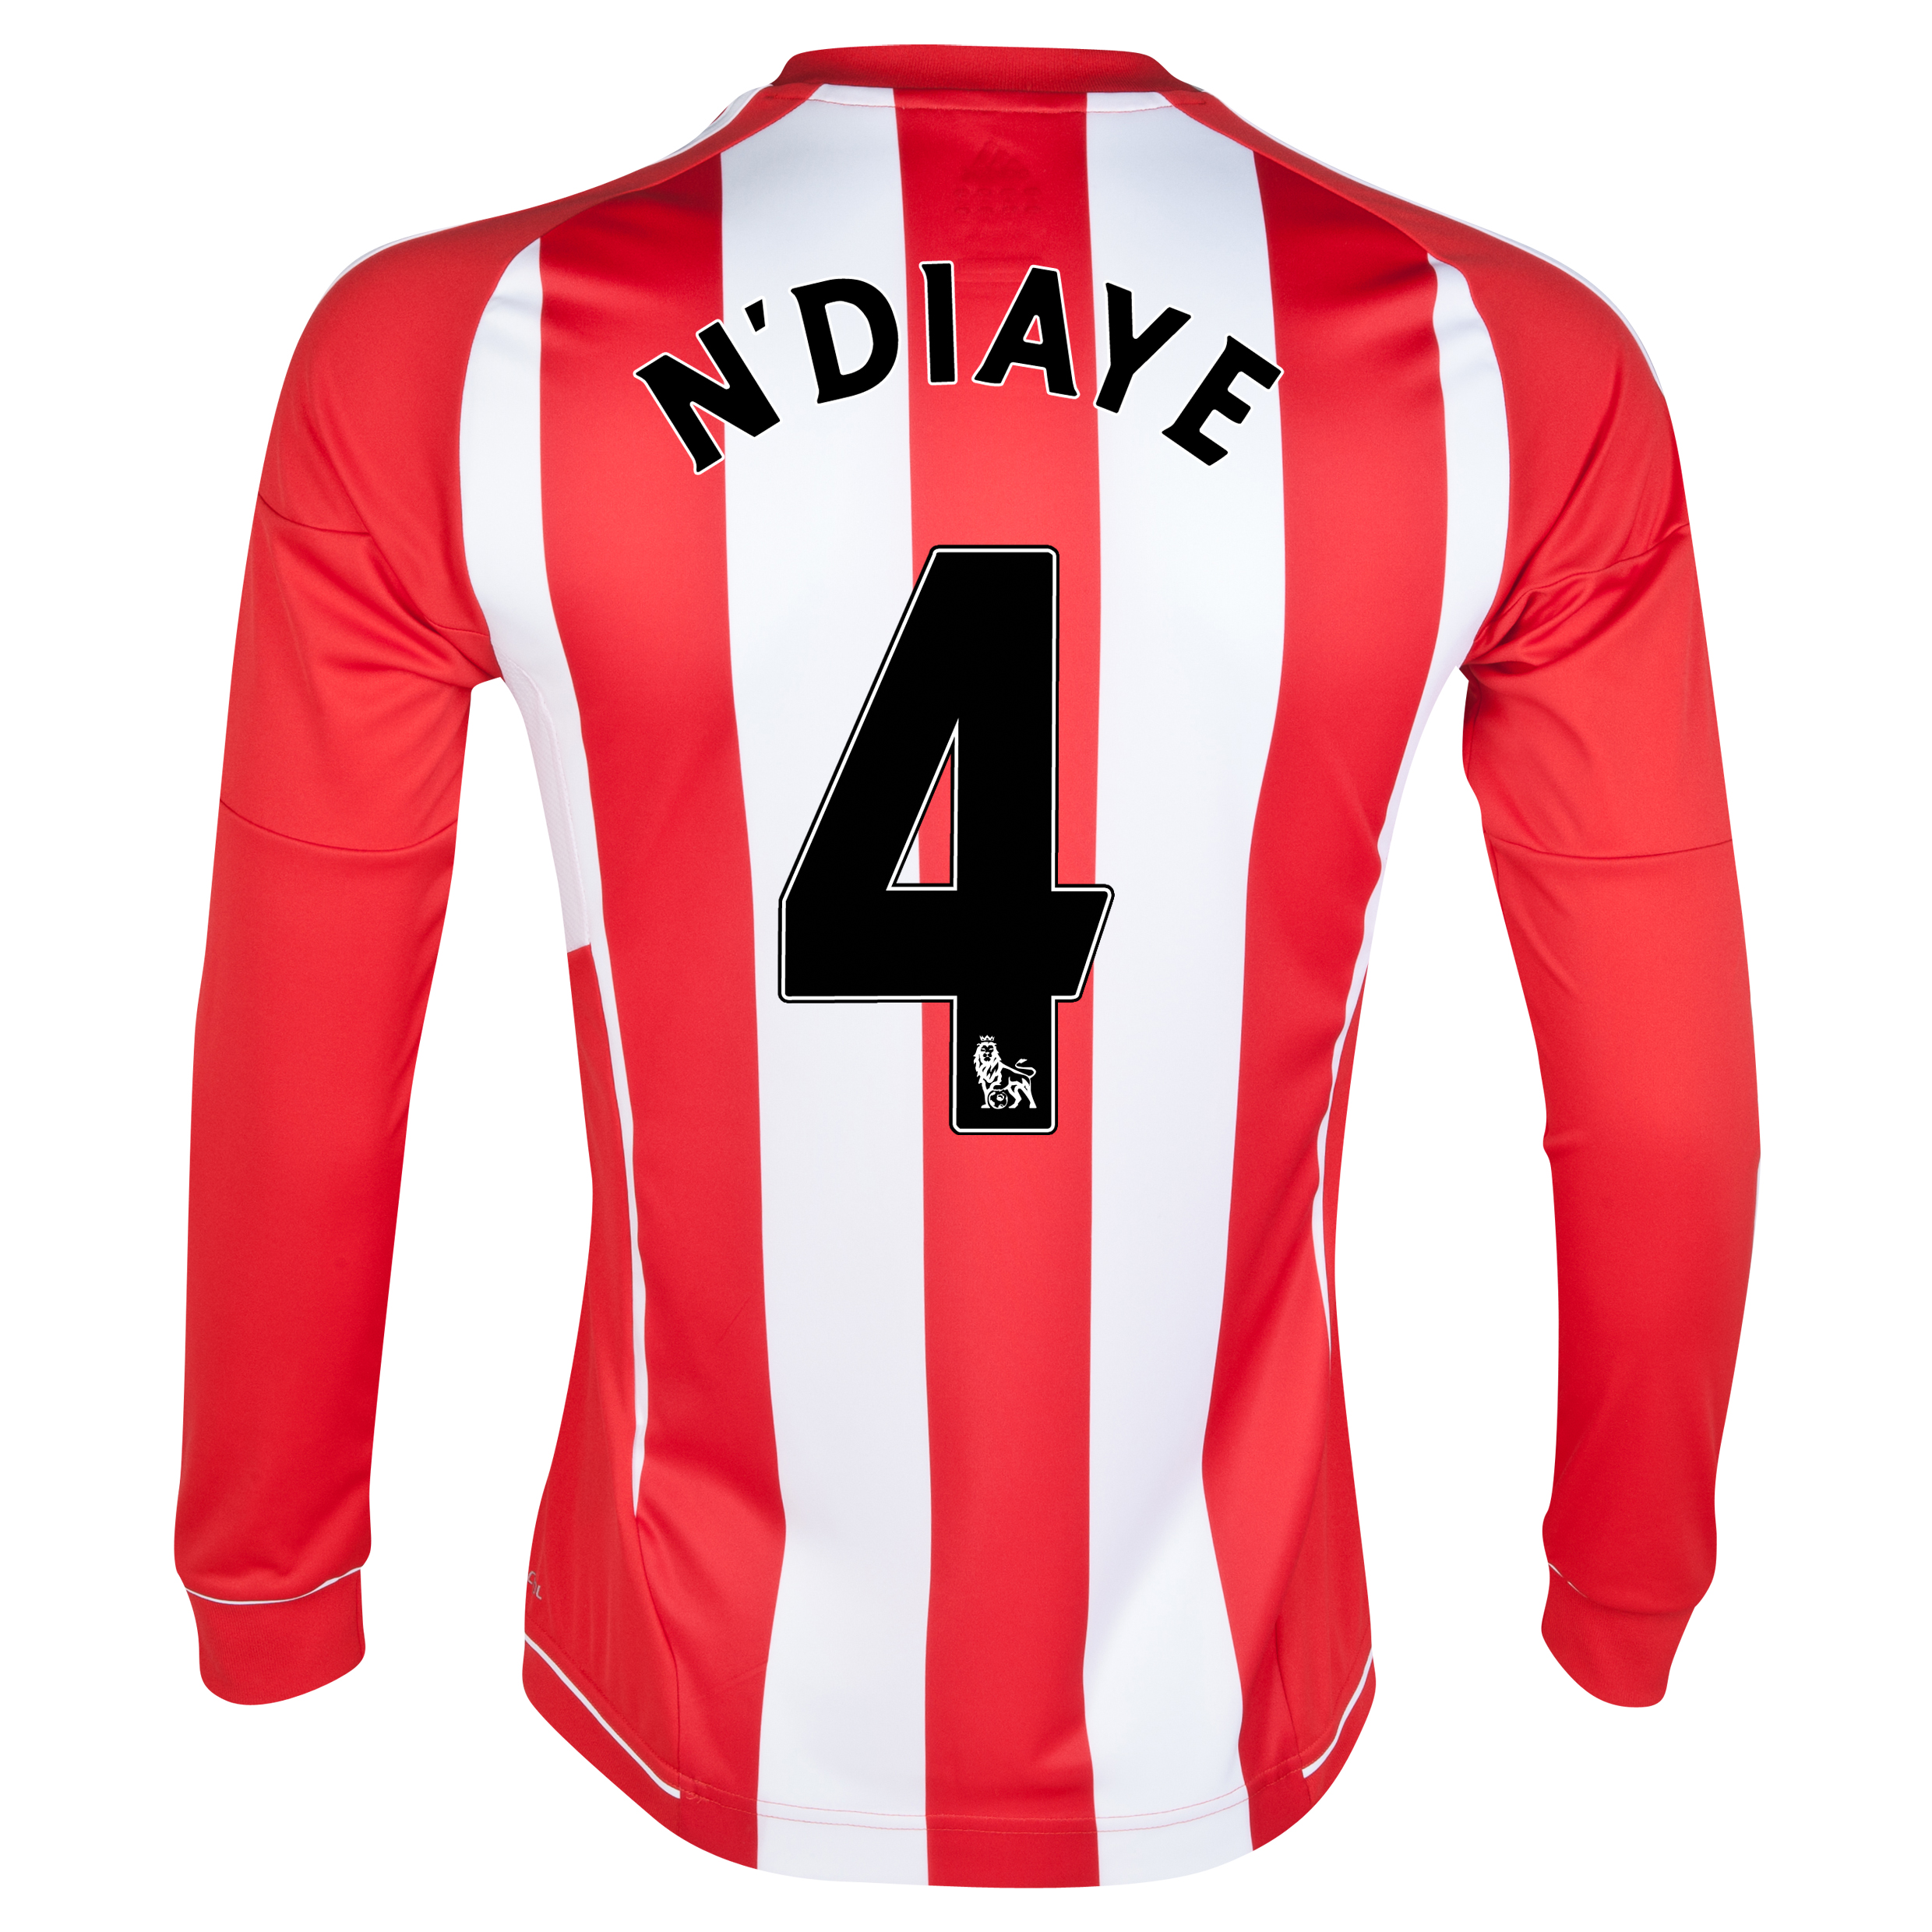 Sunderland Home Shirt 2012/13 - Long Sleeved - Junior with N'Diaye 4 printing